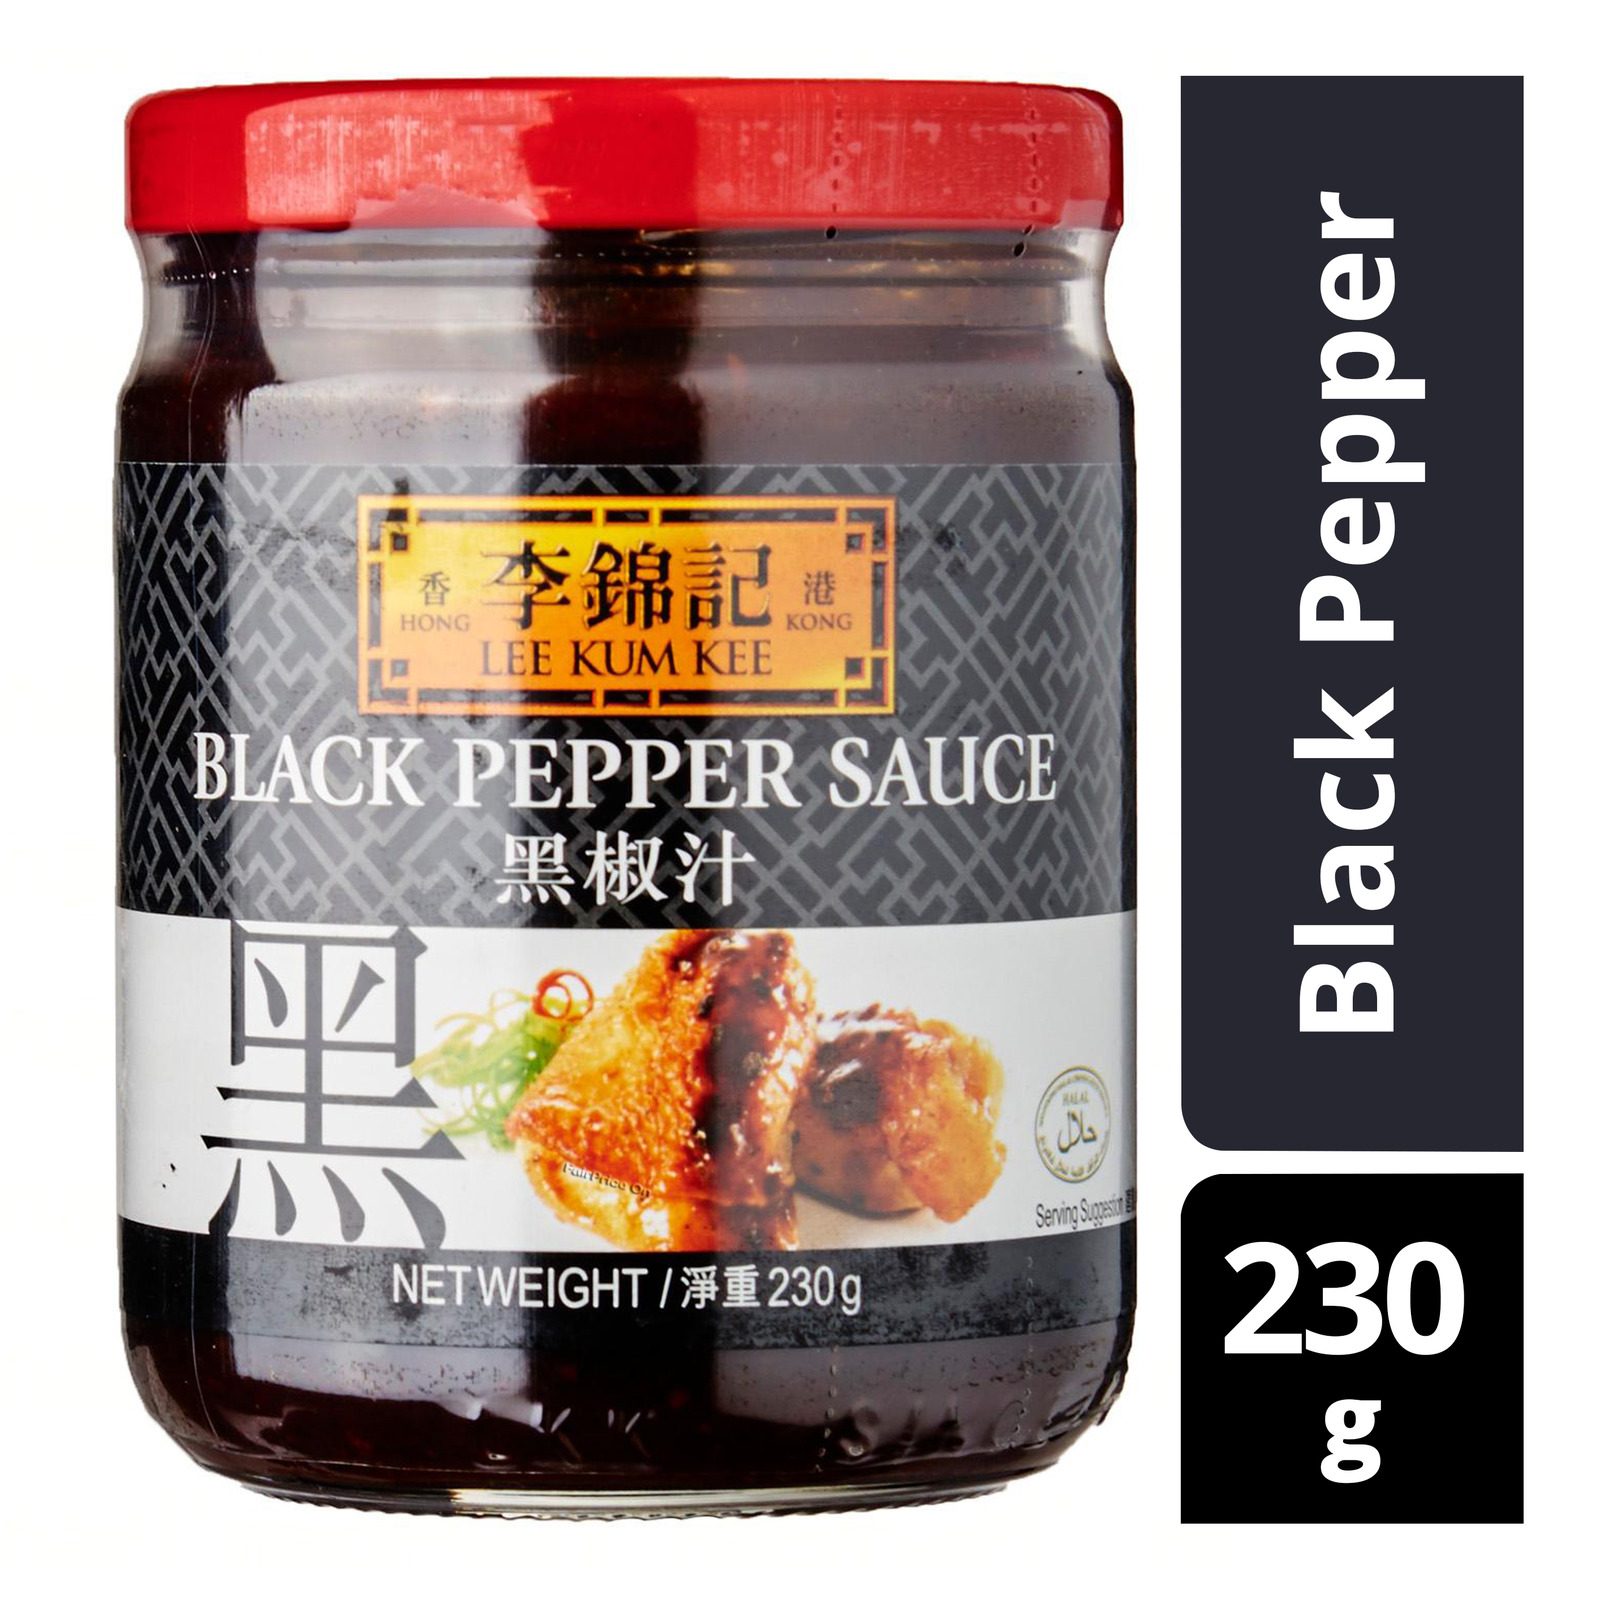 Lee Kum Kee Sauce - Black Pepper